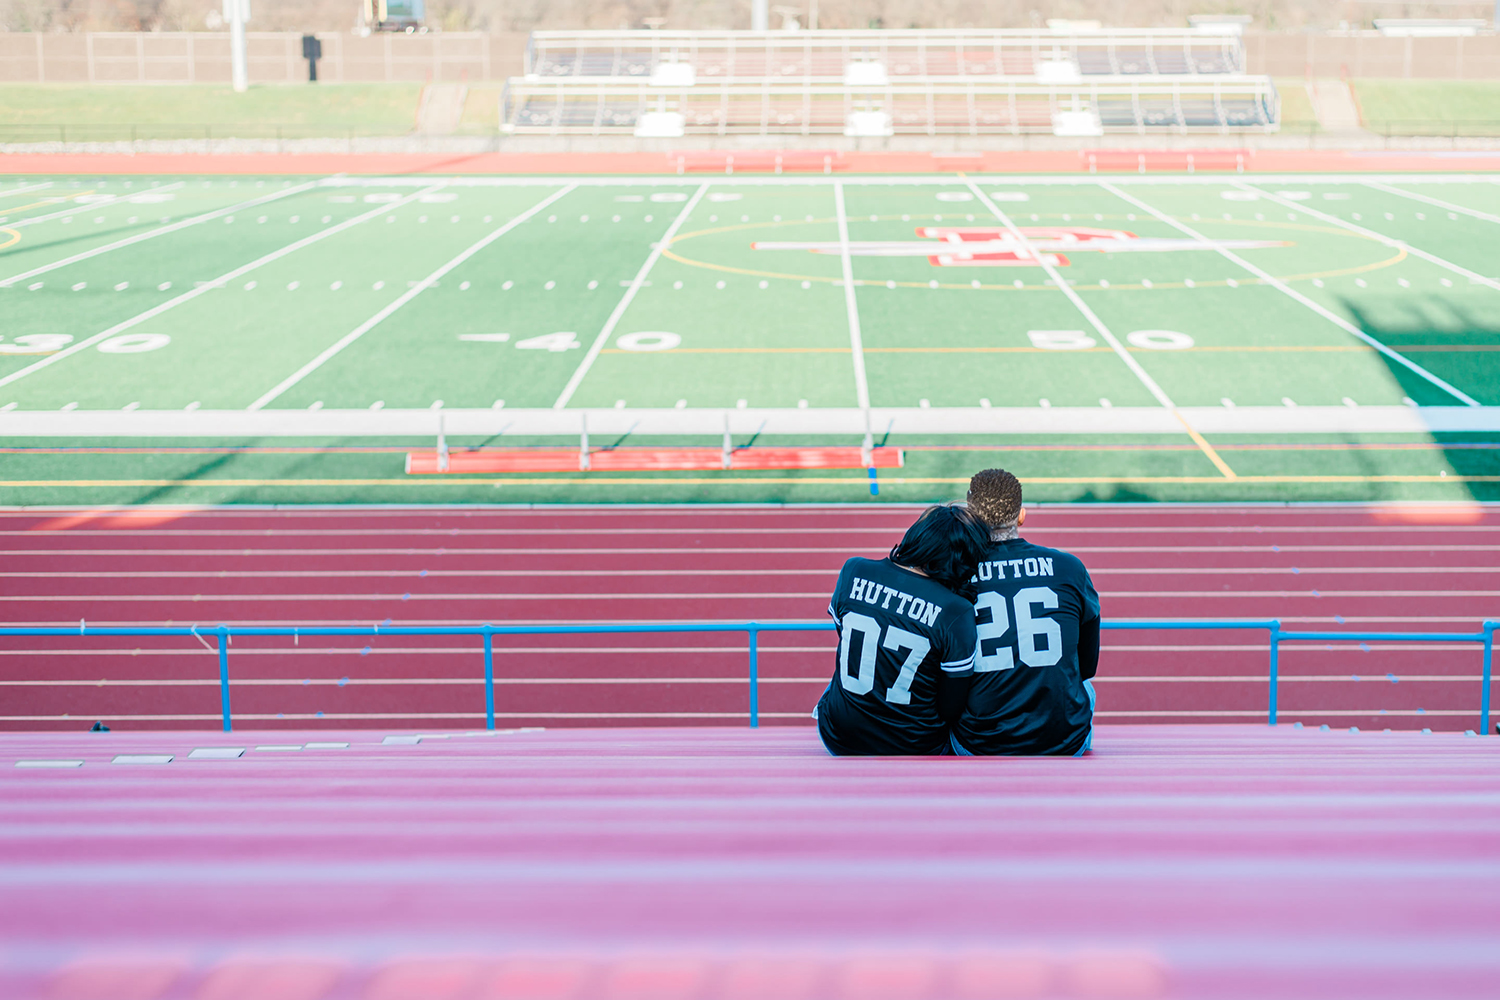 Black couple seated in bleachers with 07 and 26 on back of jerseys. By Tonjanika Smith Photography